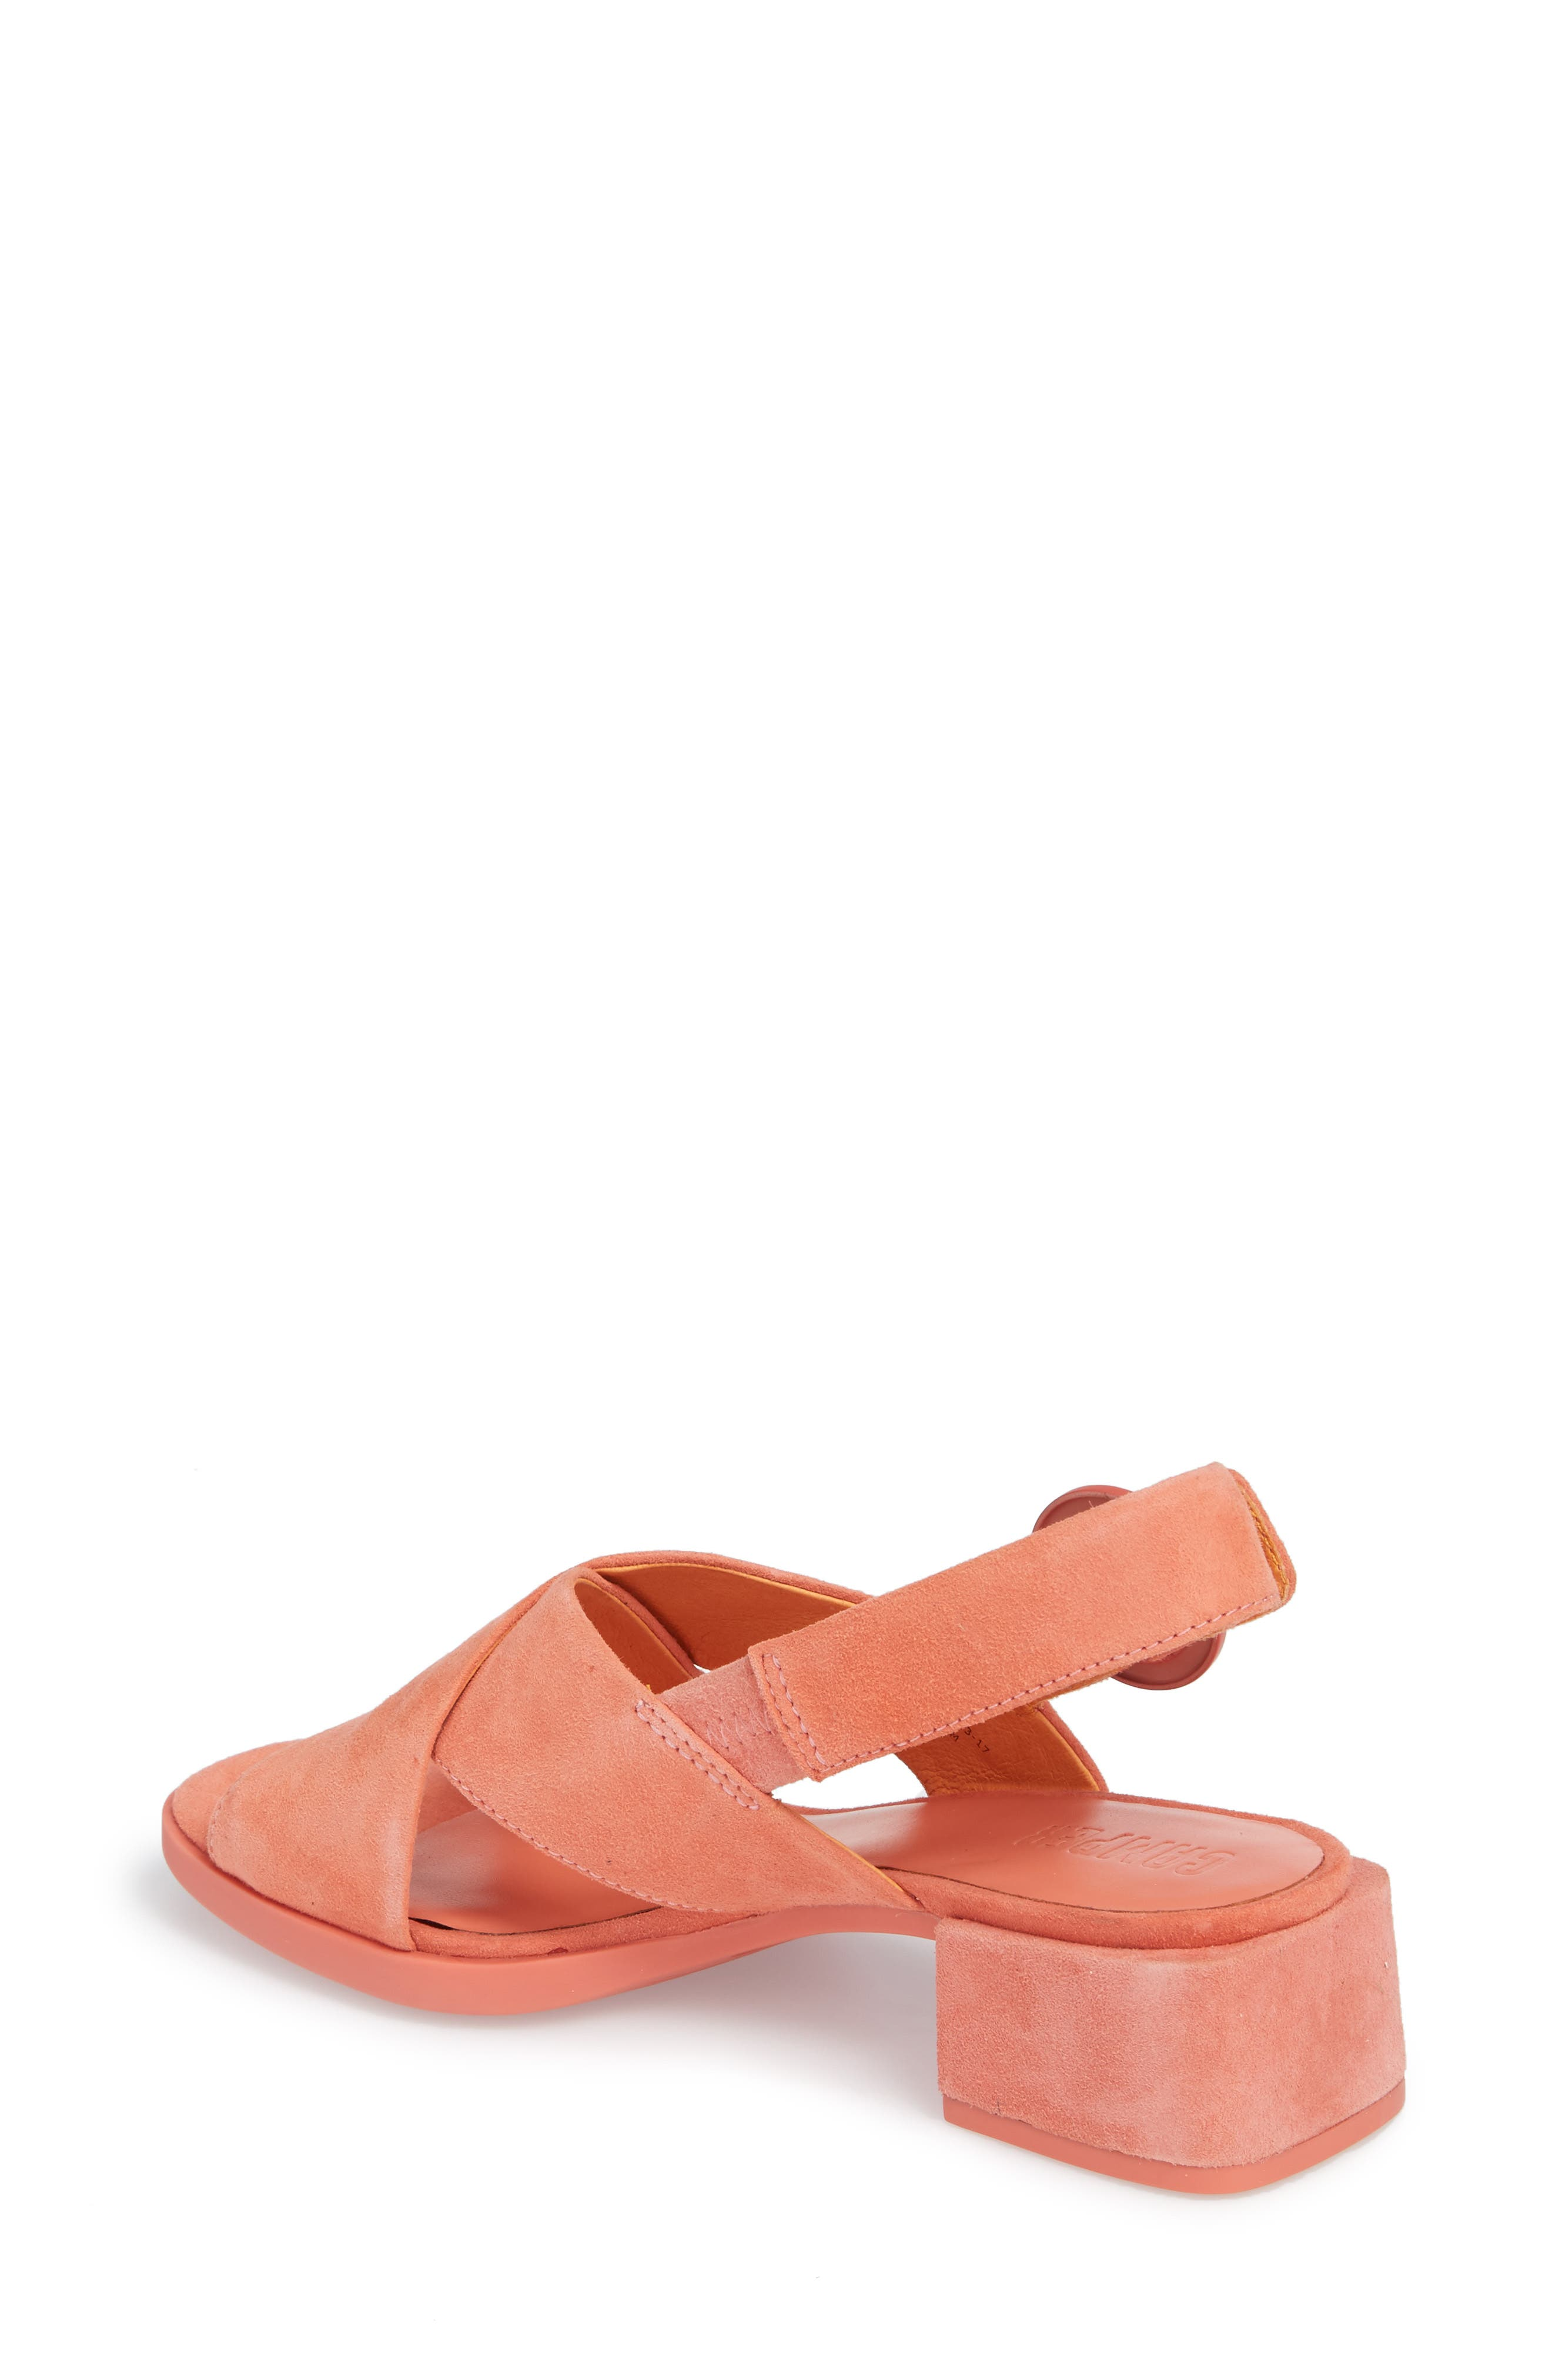 Kobo Cross Strap Sandal,                             Alternate thumbnail 2, color,                             MEDIUM PINK LEATHER